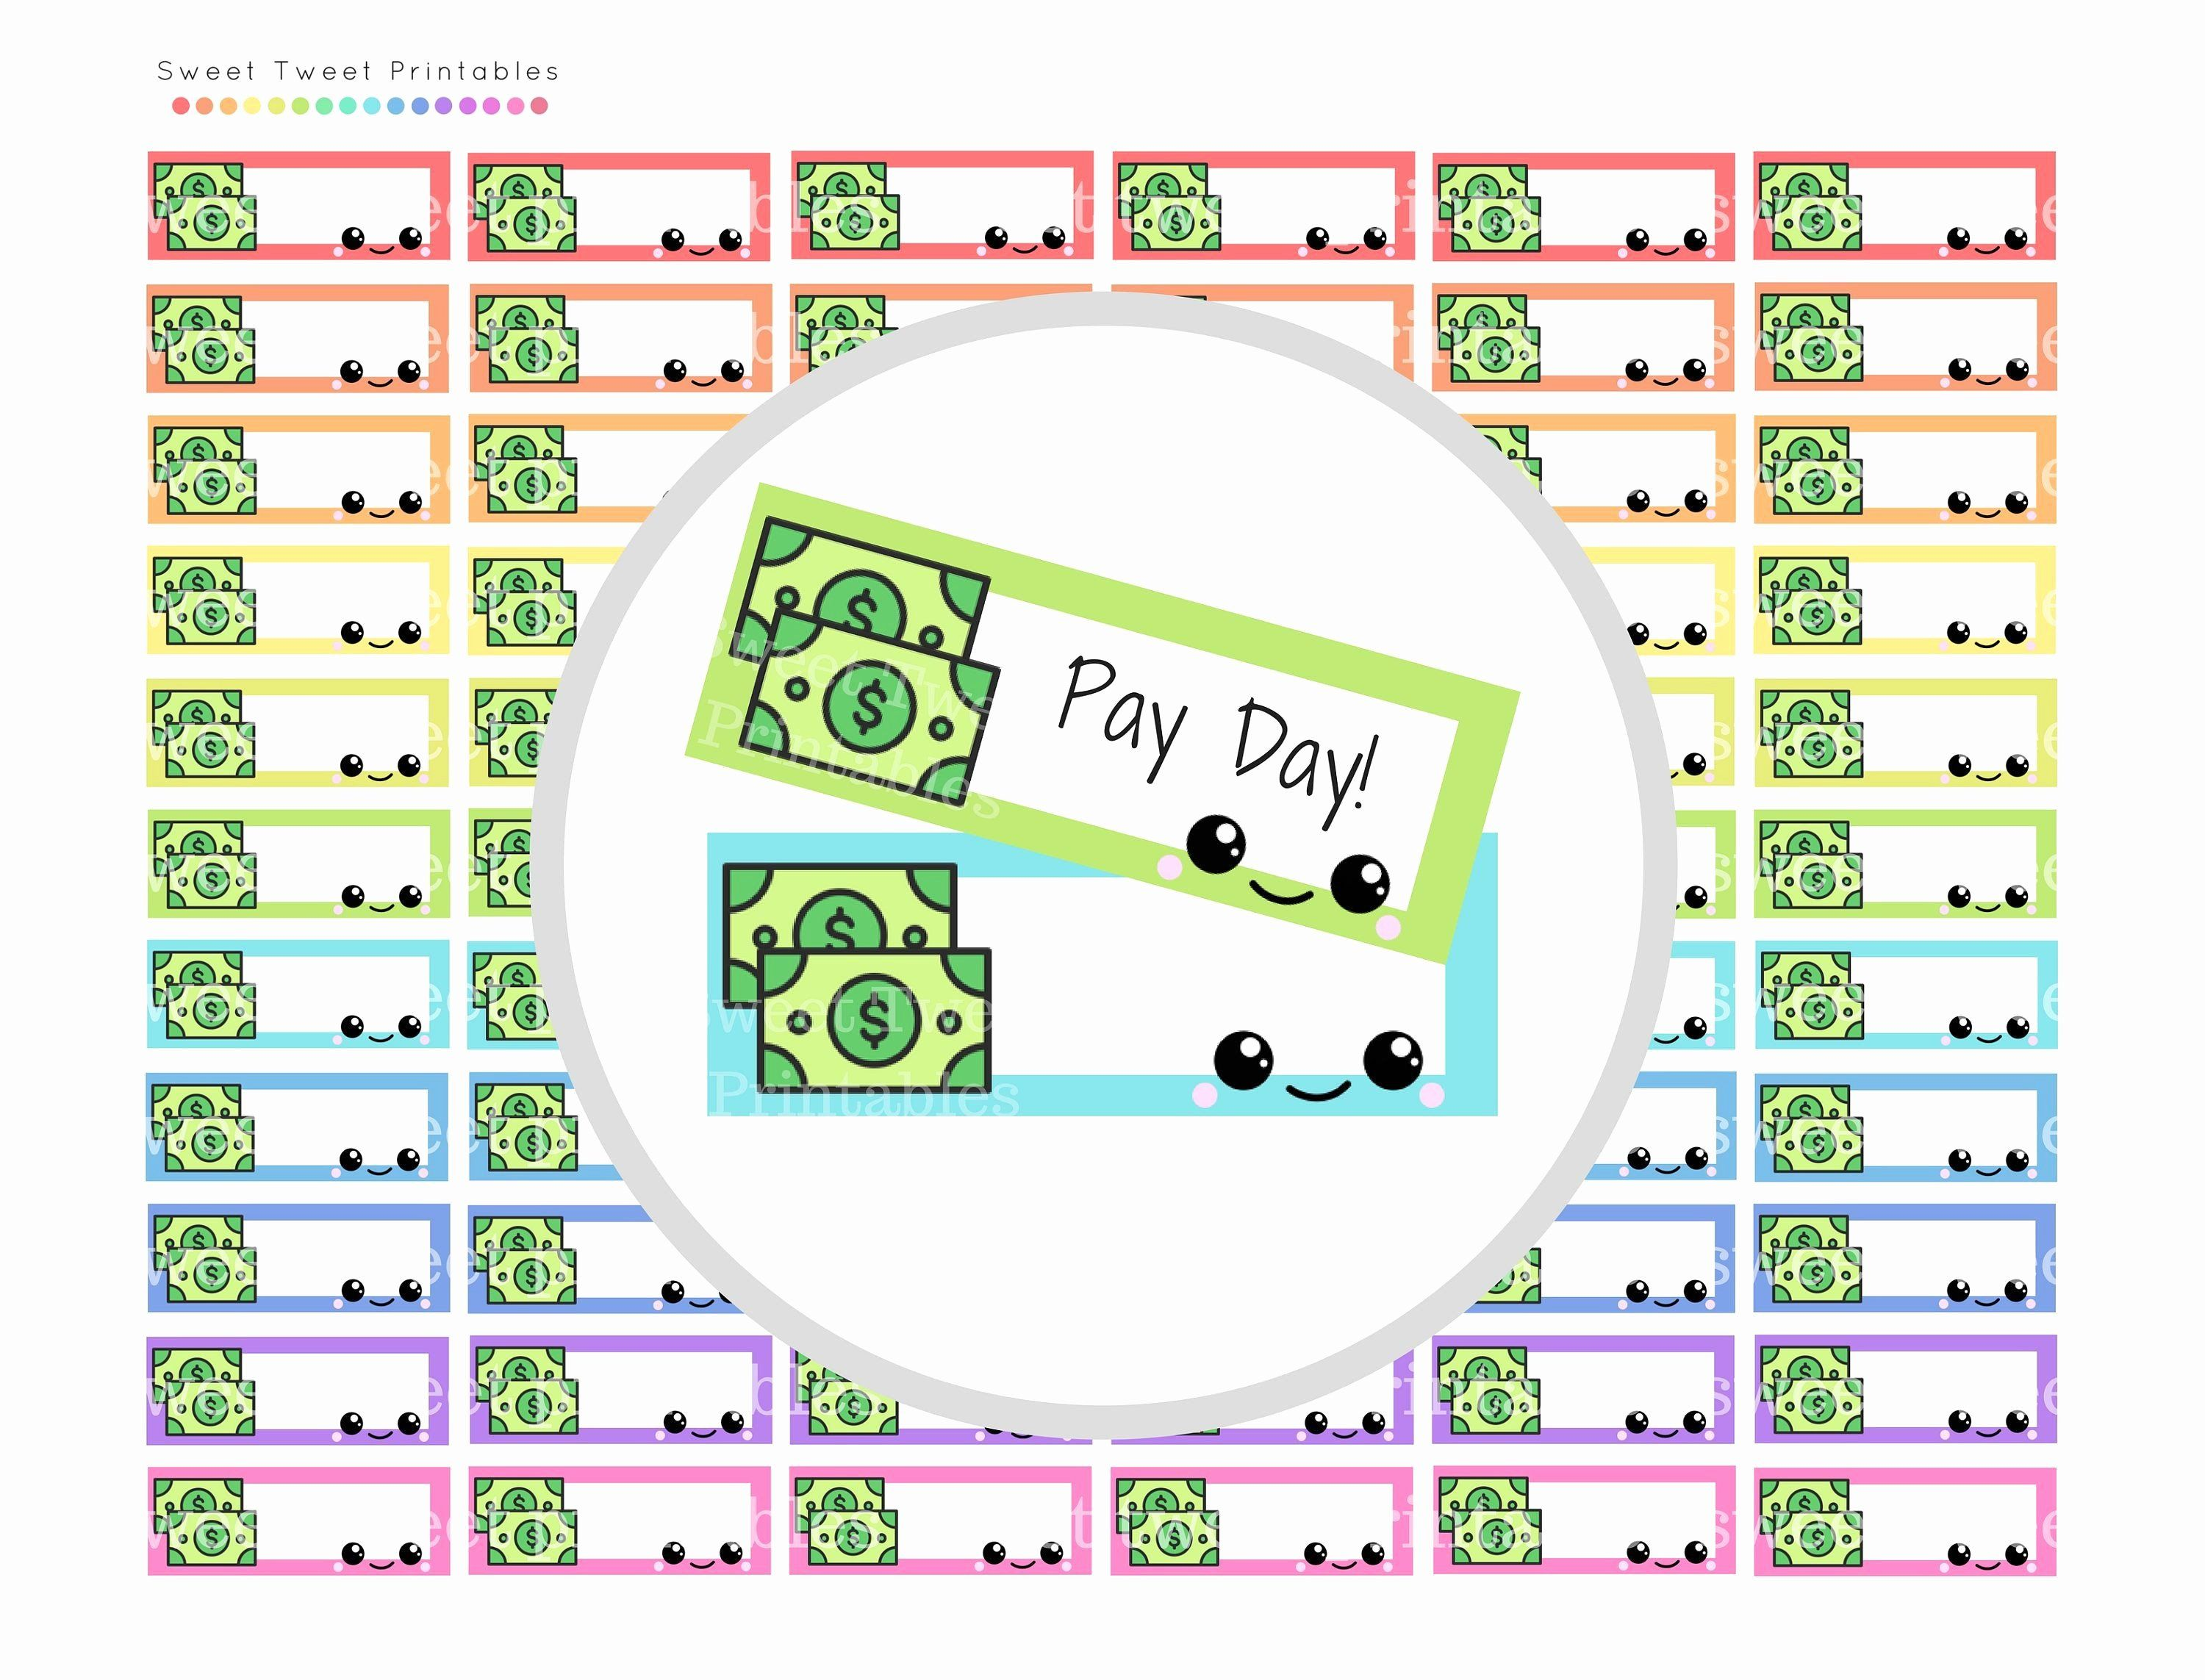 Money Coloring Pages For Kindergarten New Best Monopoly Money Coloring Pages Trasporti Money Stickers Free Planner Stickers Printable Planner Stickers